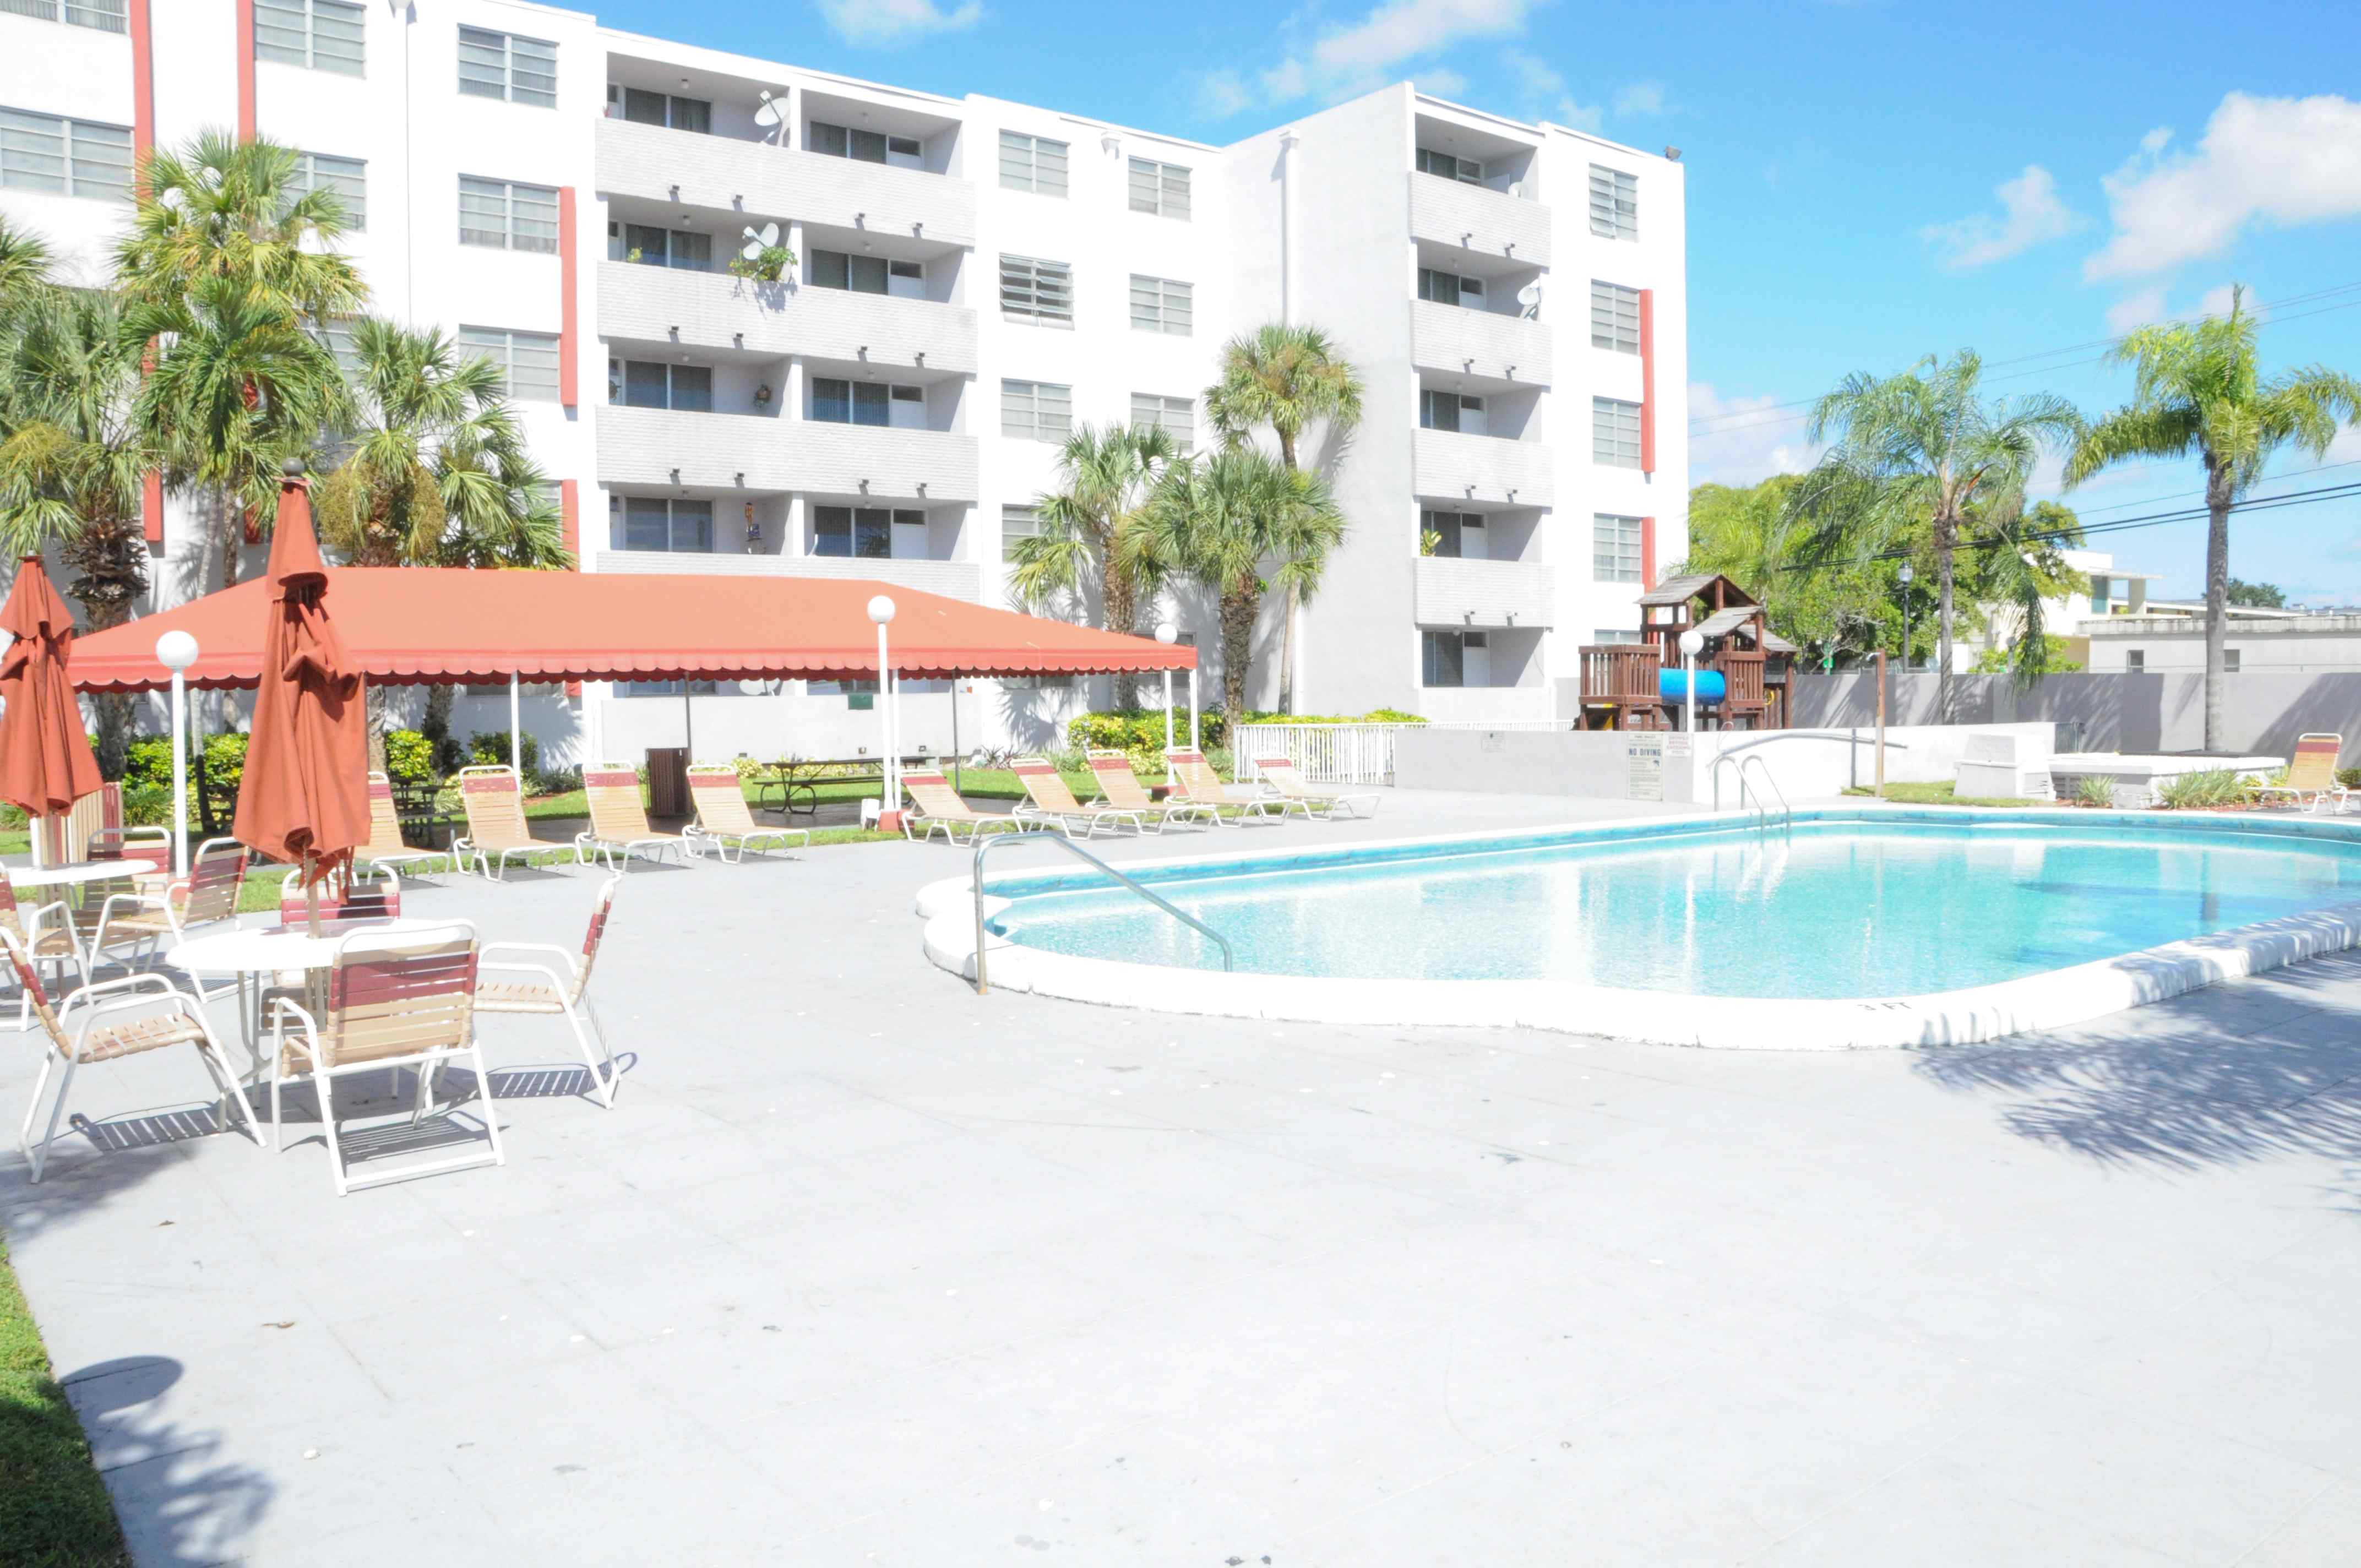 apartments for rent in north miami beach fl